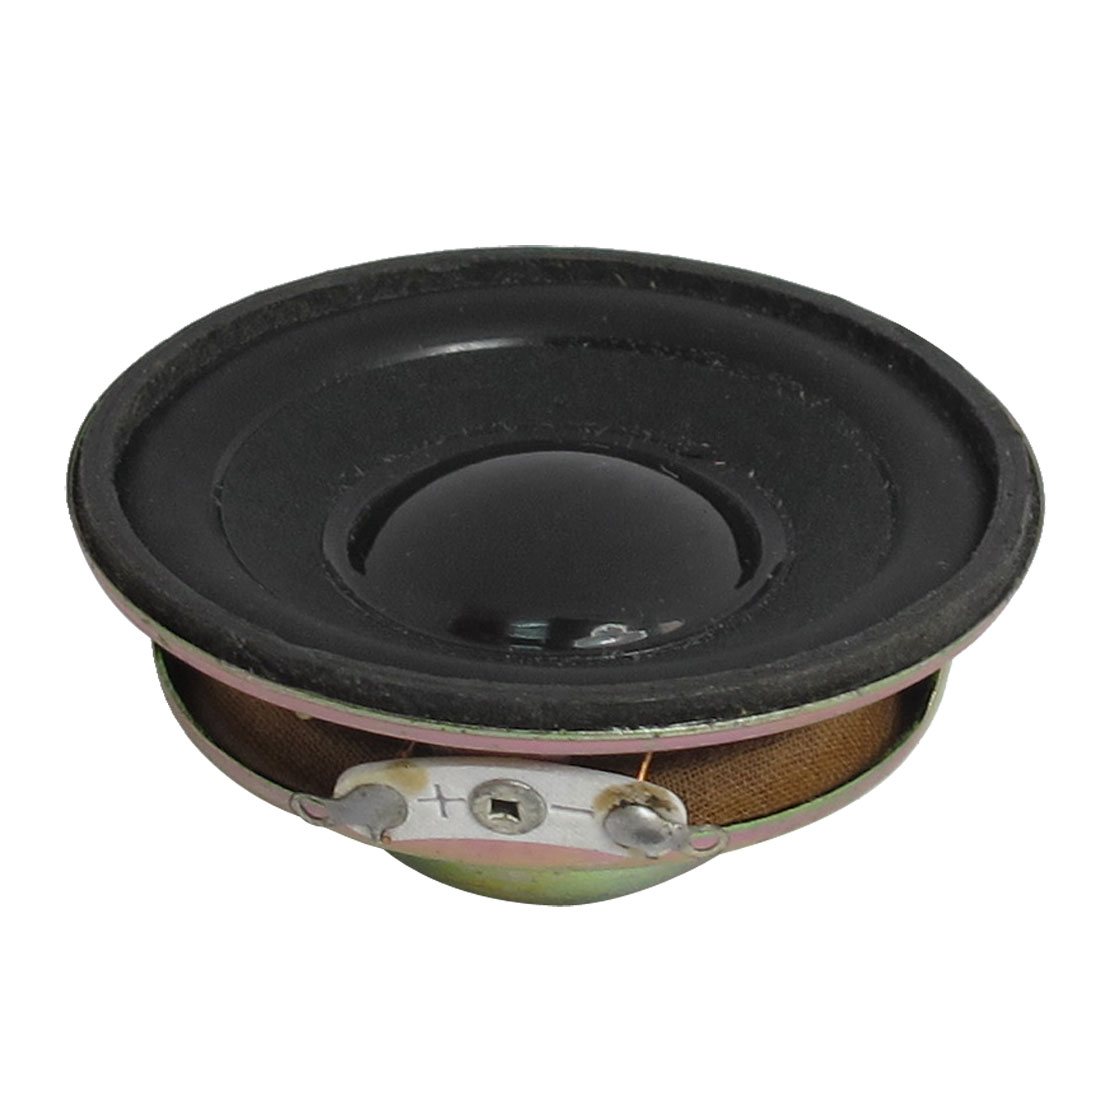 "3W 3 Watt 8 Ohm 2"" Diameter Magnetic Type Aluminum Shell Round Speaker"